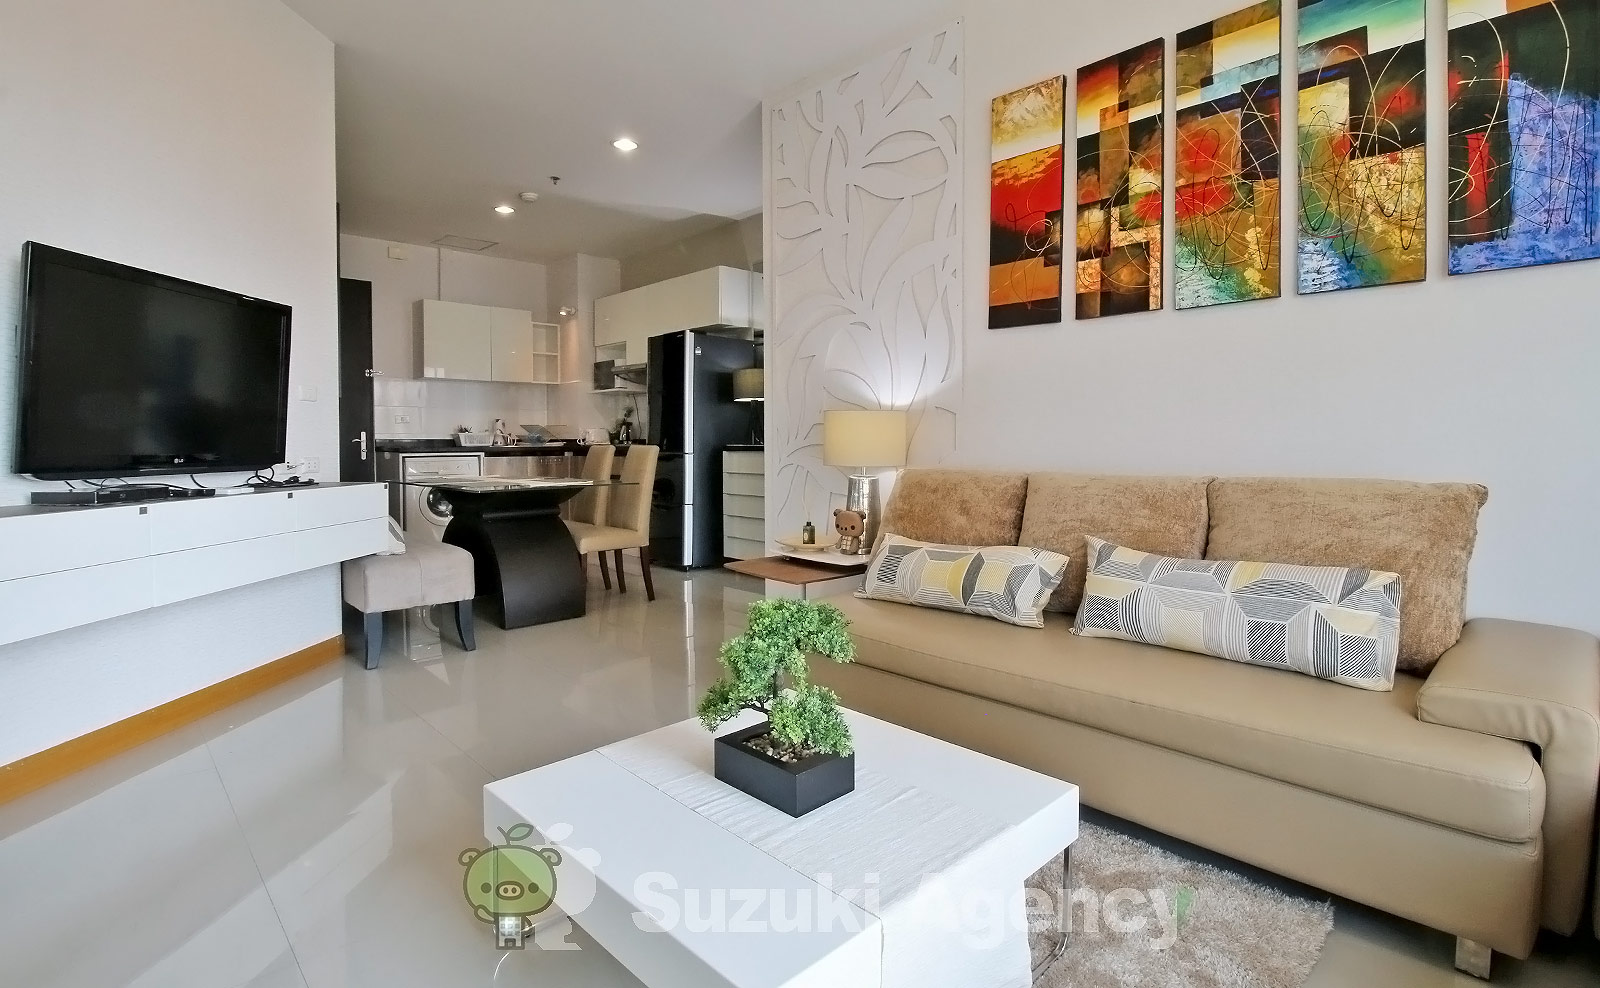 Citi Smart Condo:2Bed Room Photos No.4